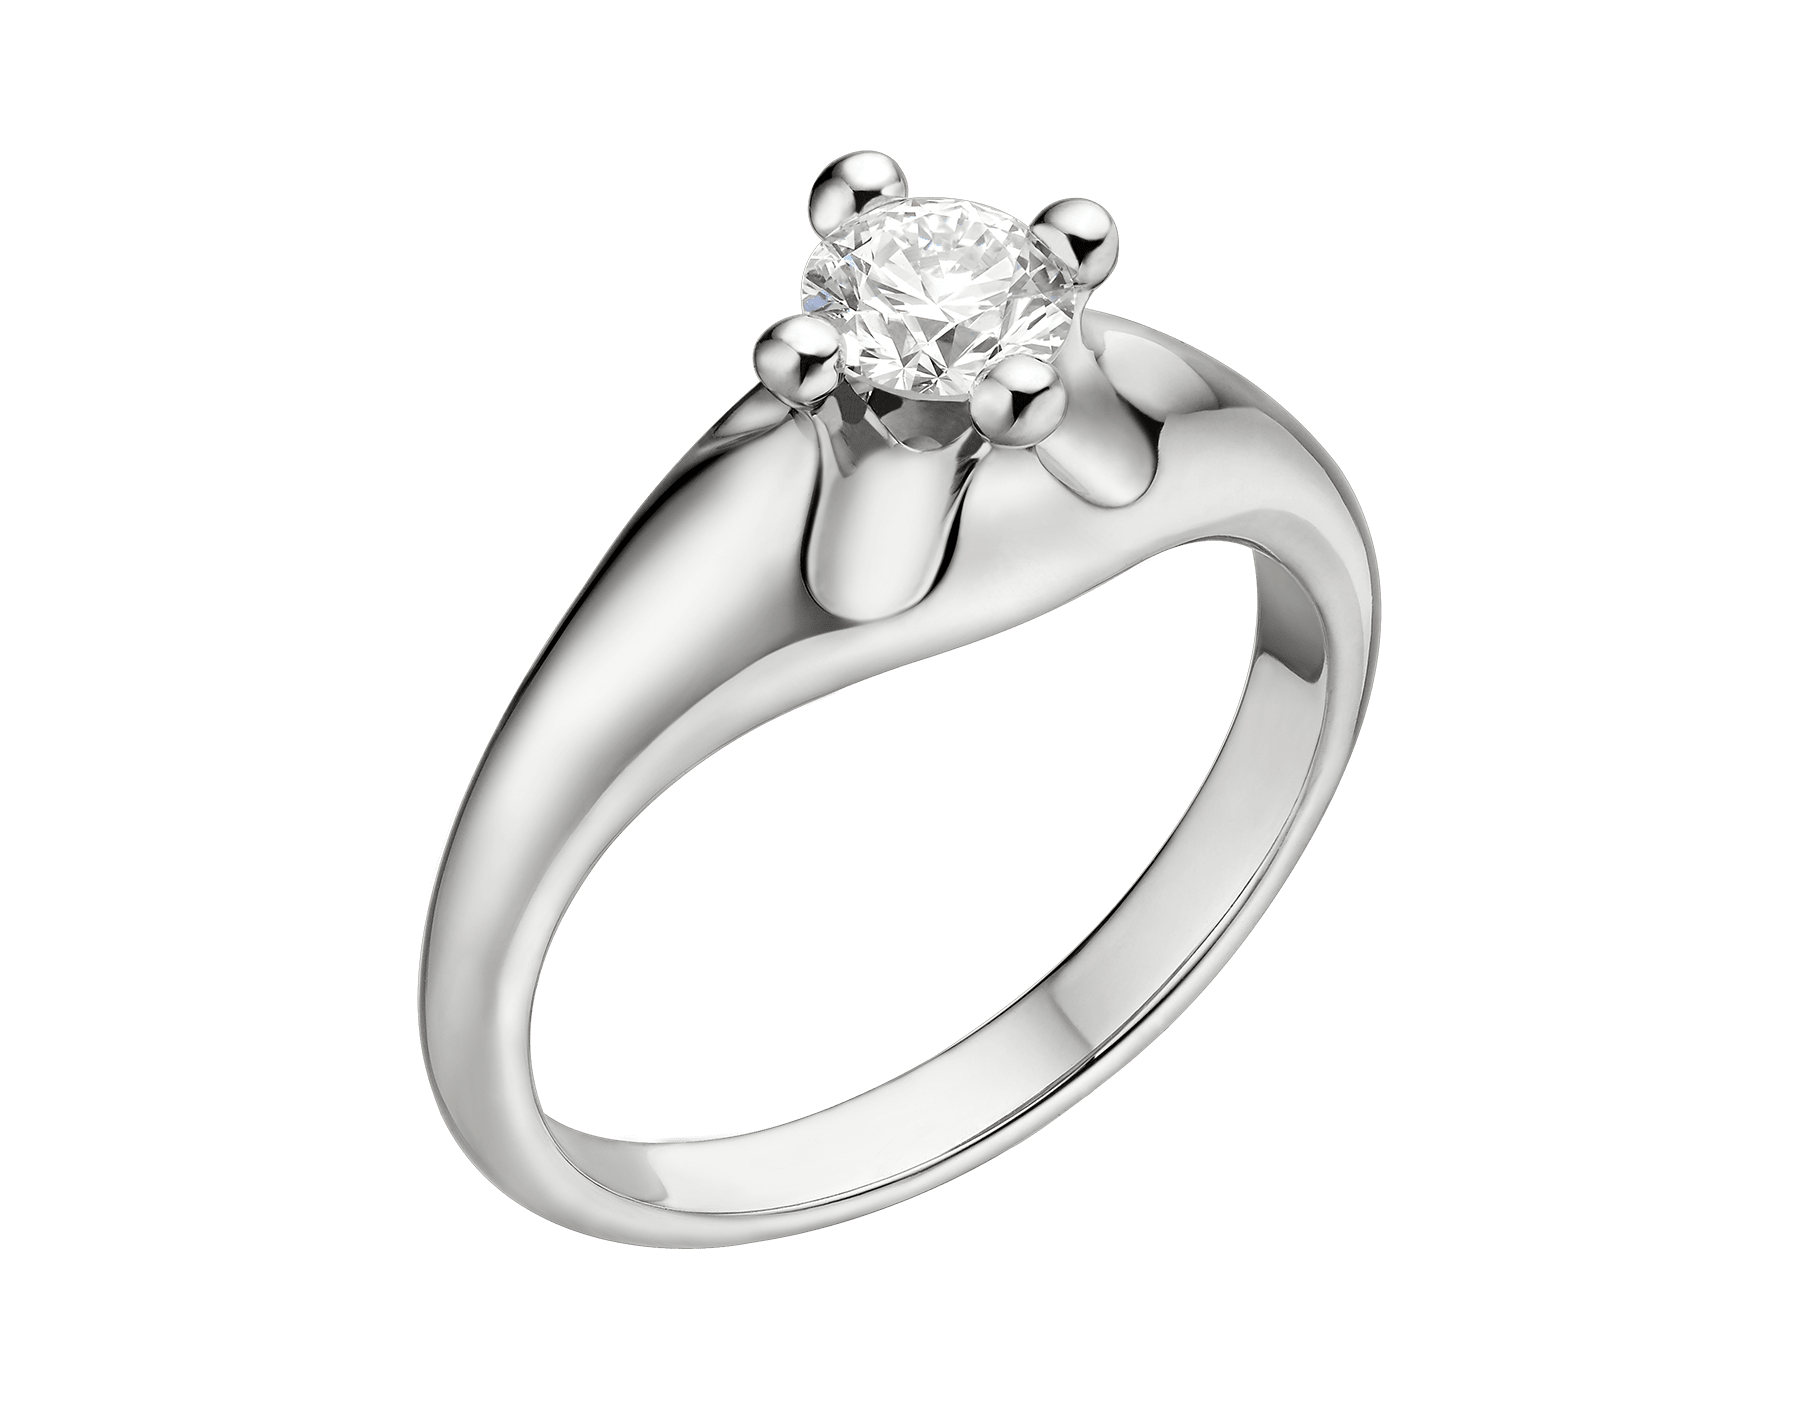 Corona solitaire ring in platinum with round brilliant cut diamond. Available from 0.30 ct. Inspired by the crown and the flower, two enduring symbols of glory and celebration since ancient times. 326295 image 2